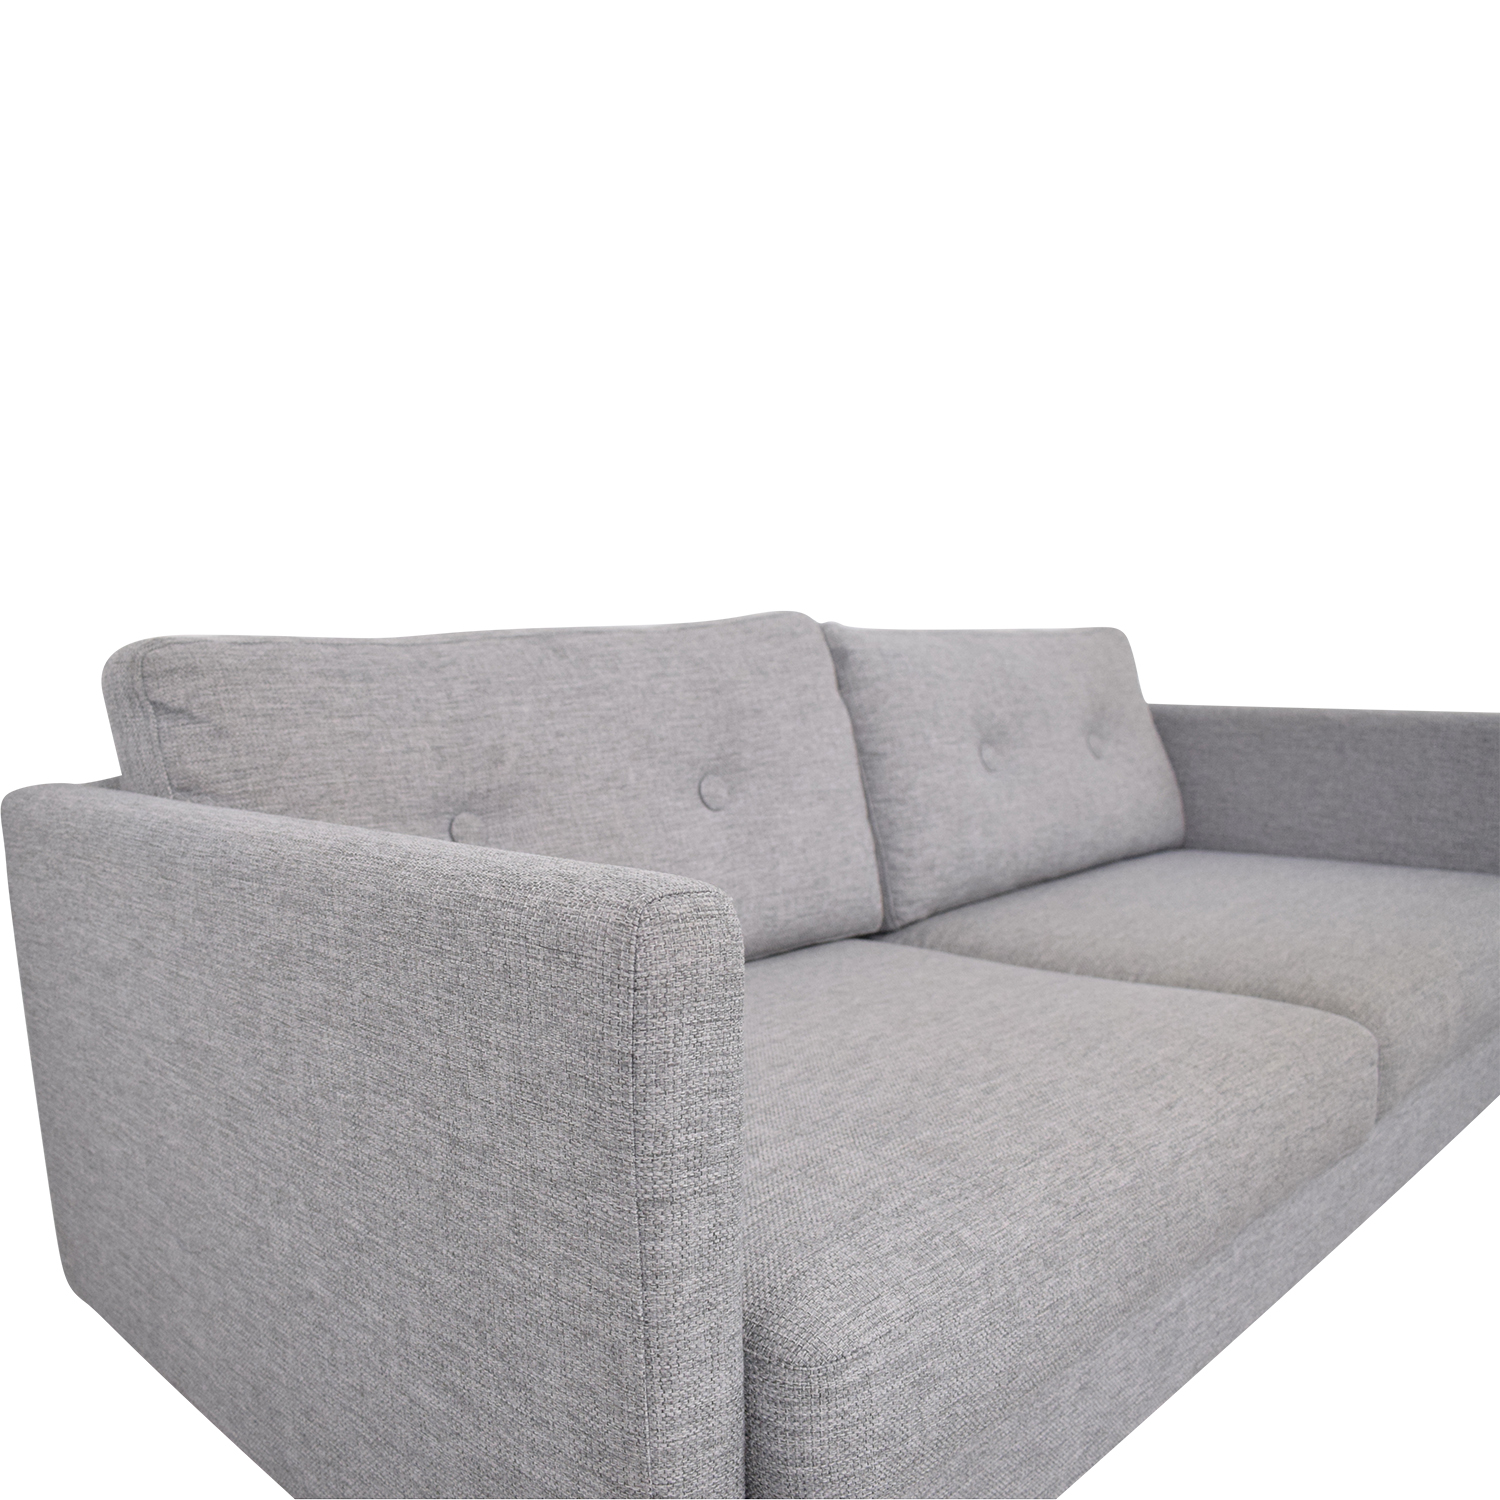 Article Article Anton 2.5 Seater Sofa on sale